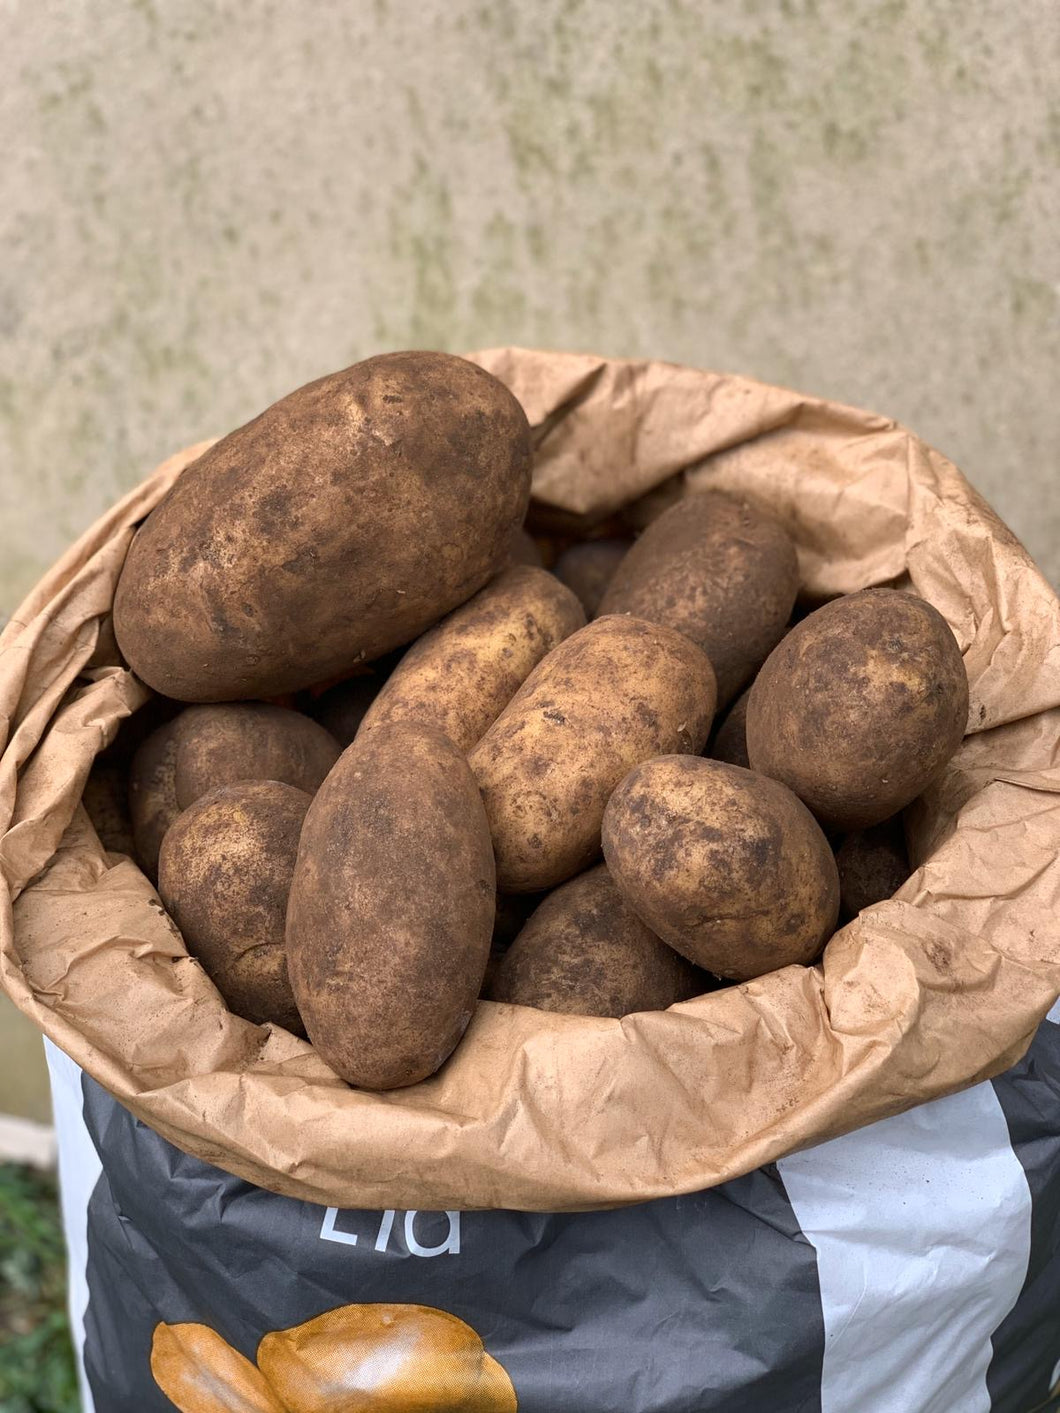 20kg Sack of Sagitta Potatoes